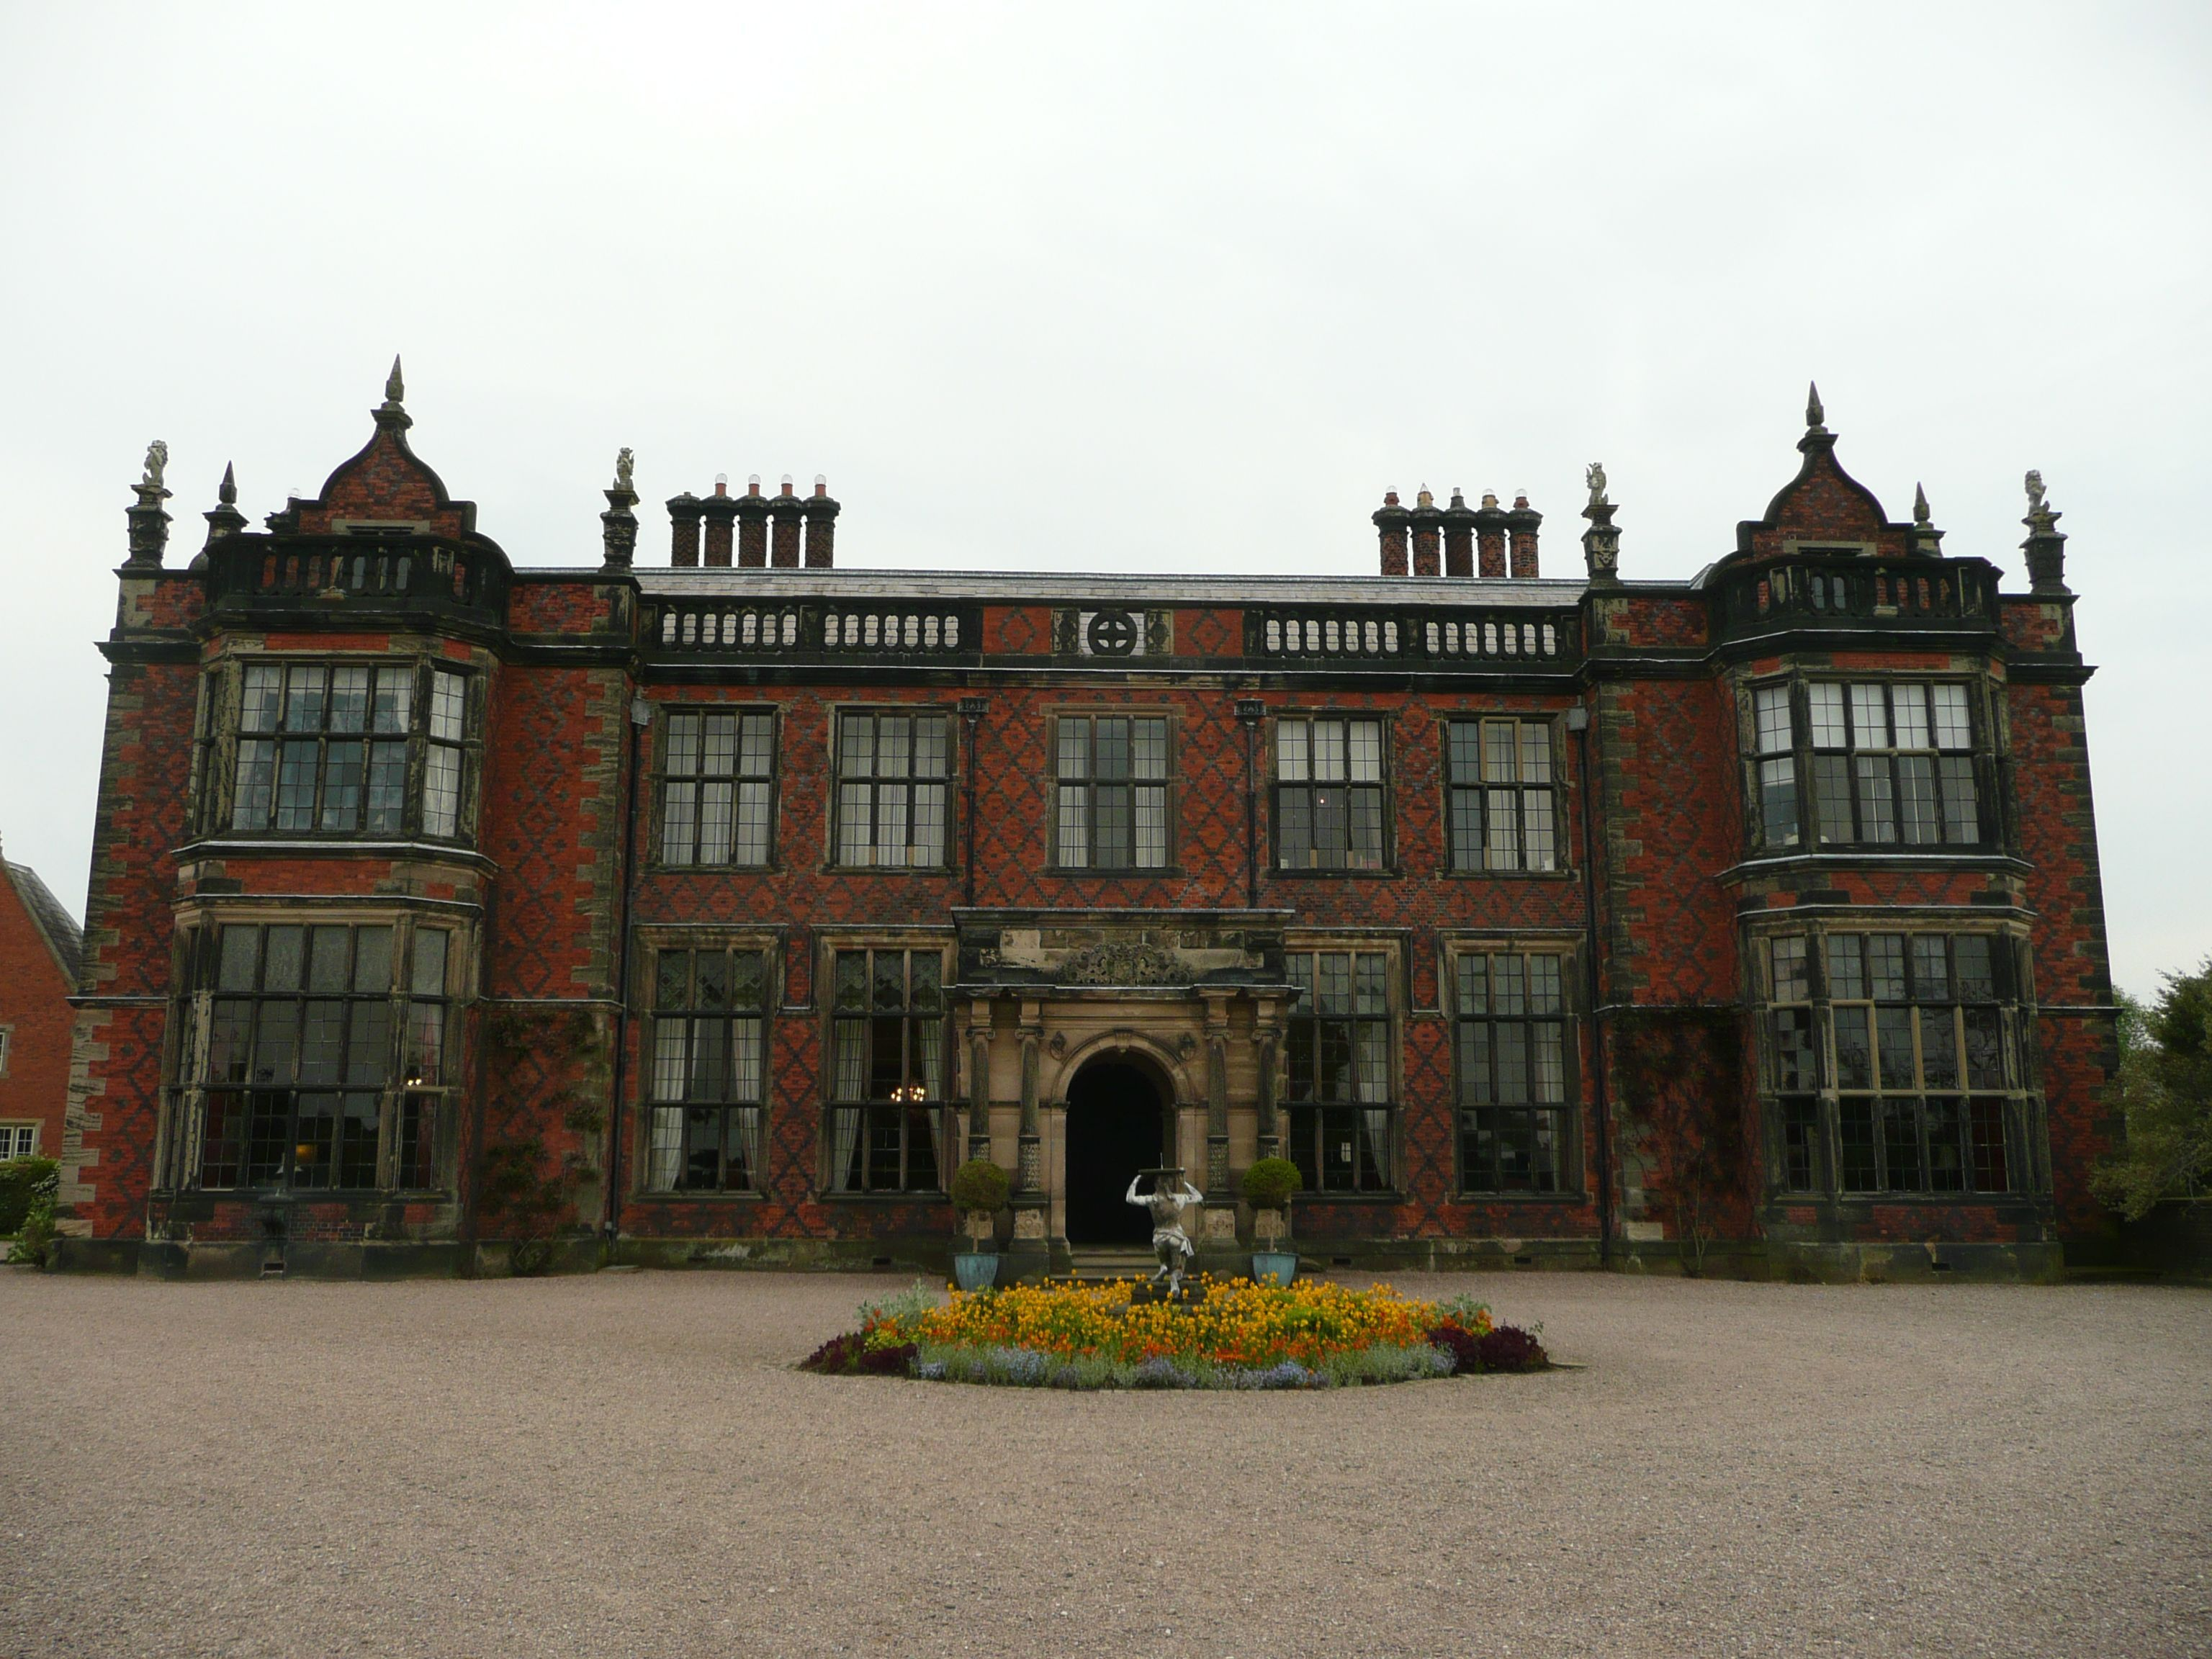 Arley Hall, Cheshire: 'Jacobethan', built 1832-1845 by George Latham (†1871) for Rowland Egerton-Warburton